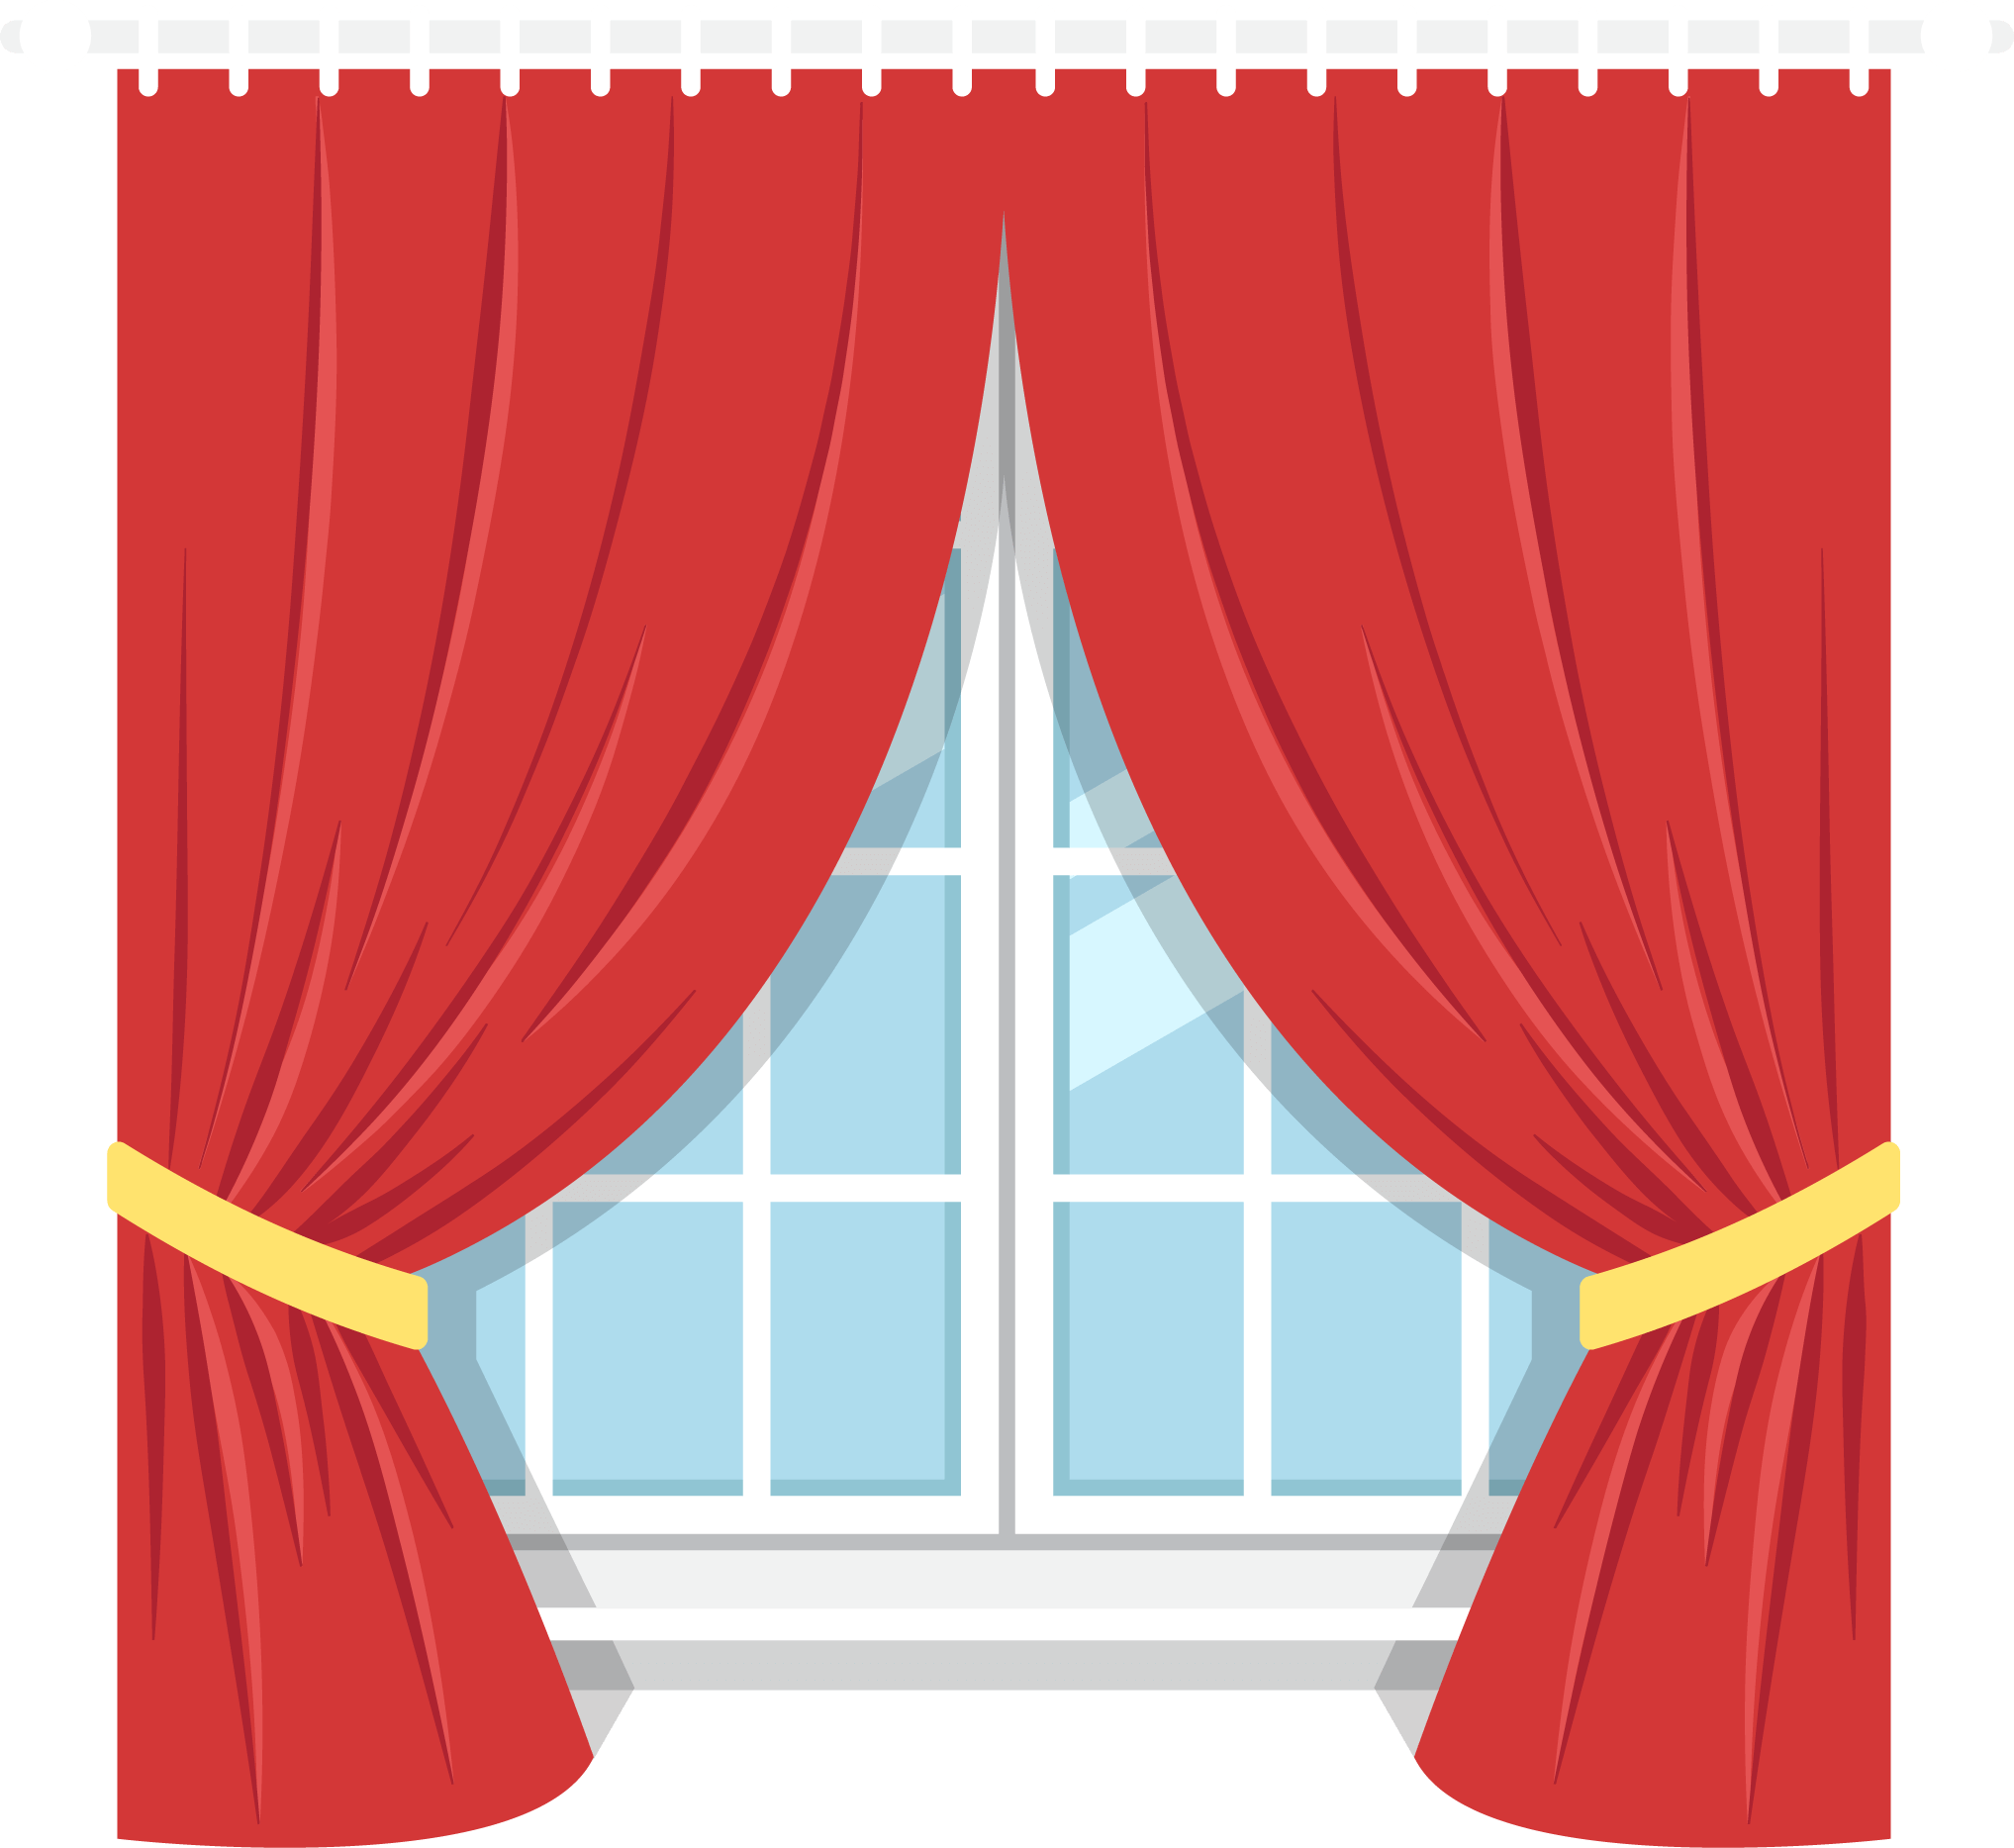 Window with drapes clipart image stock Curtain clipart window shades, Curtain window shades ... image stock